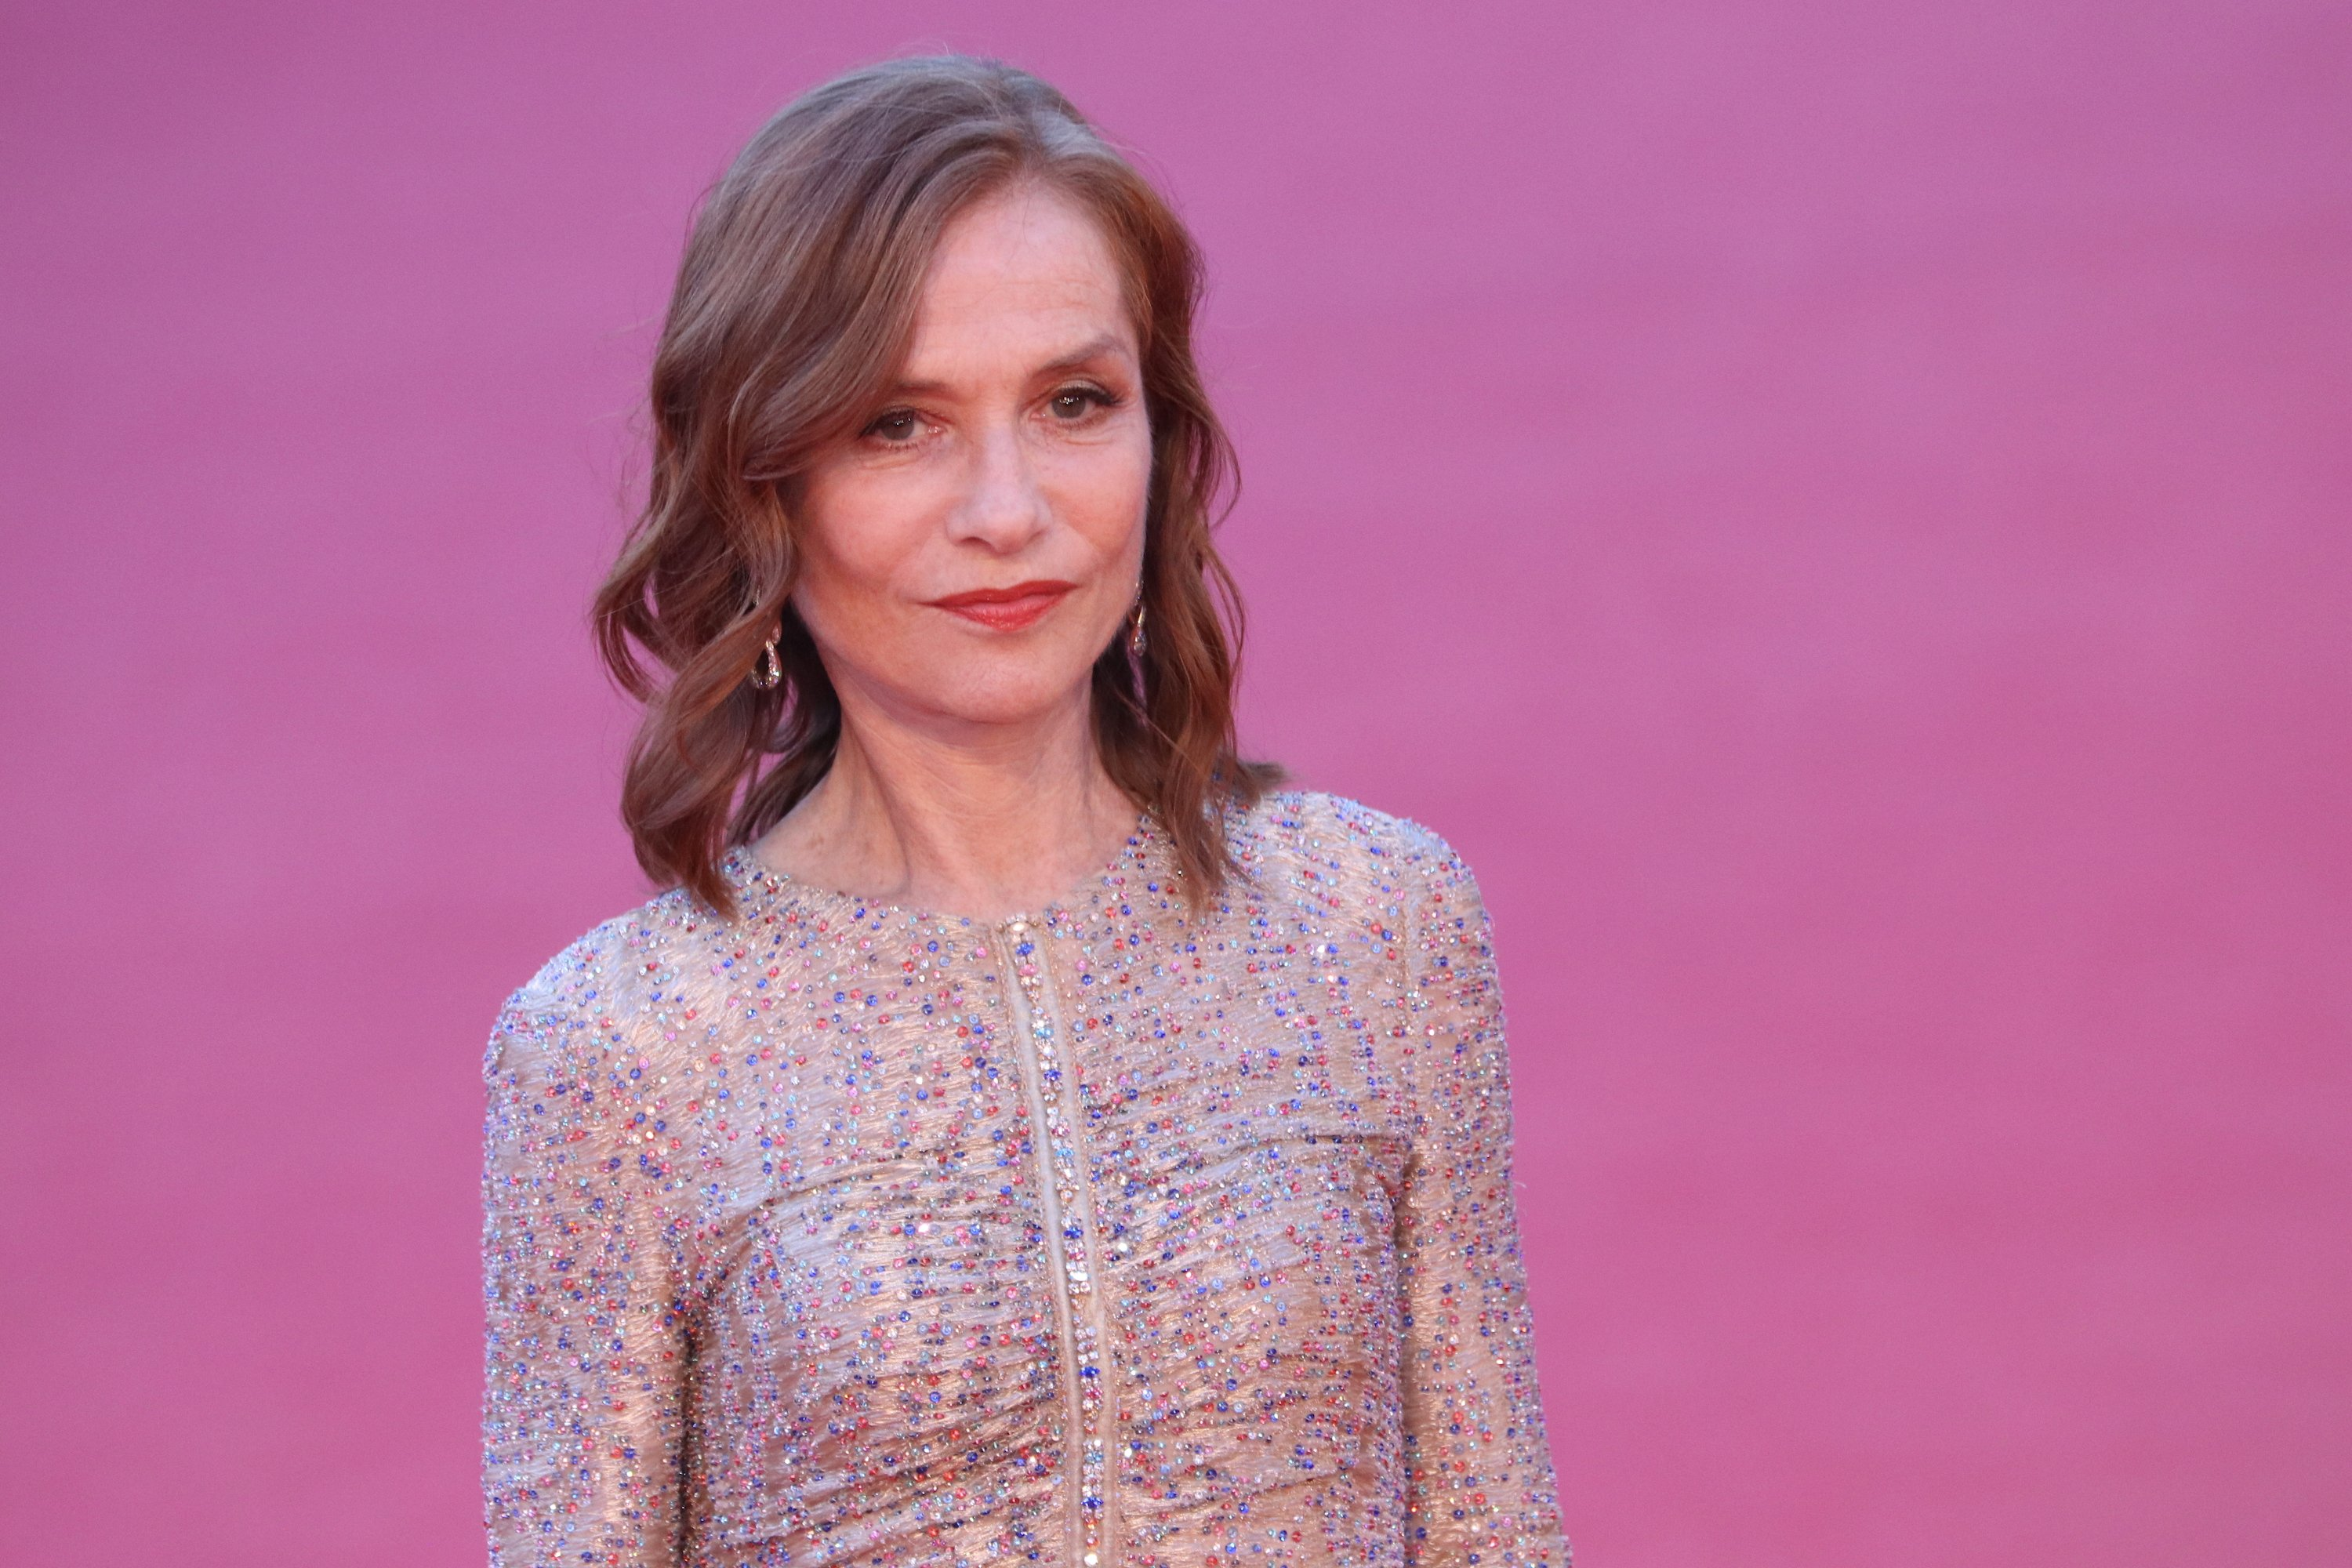 Roma 2018: una foto di Isabelle Huppert sul red carpet